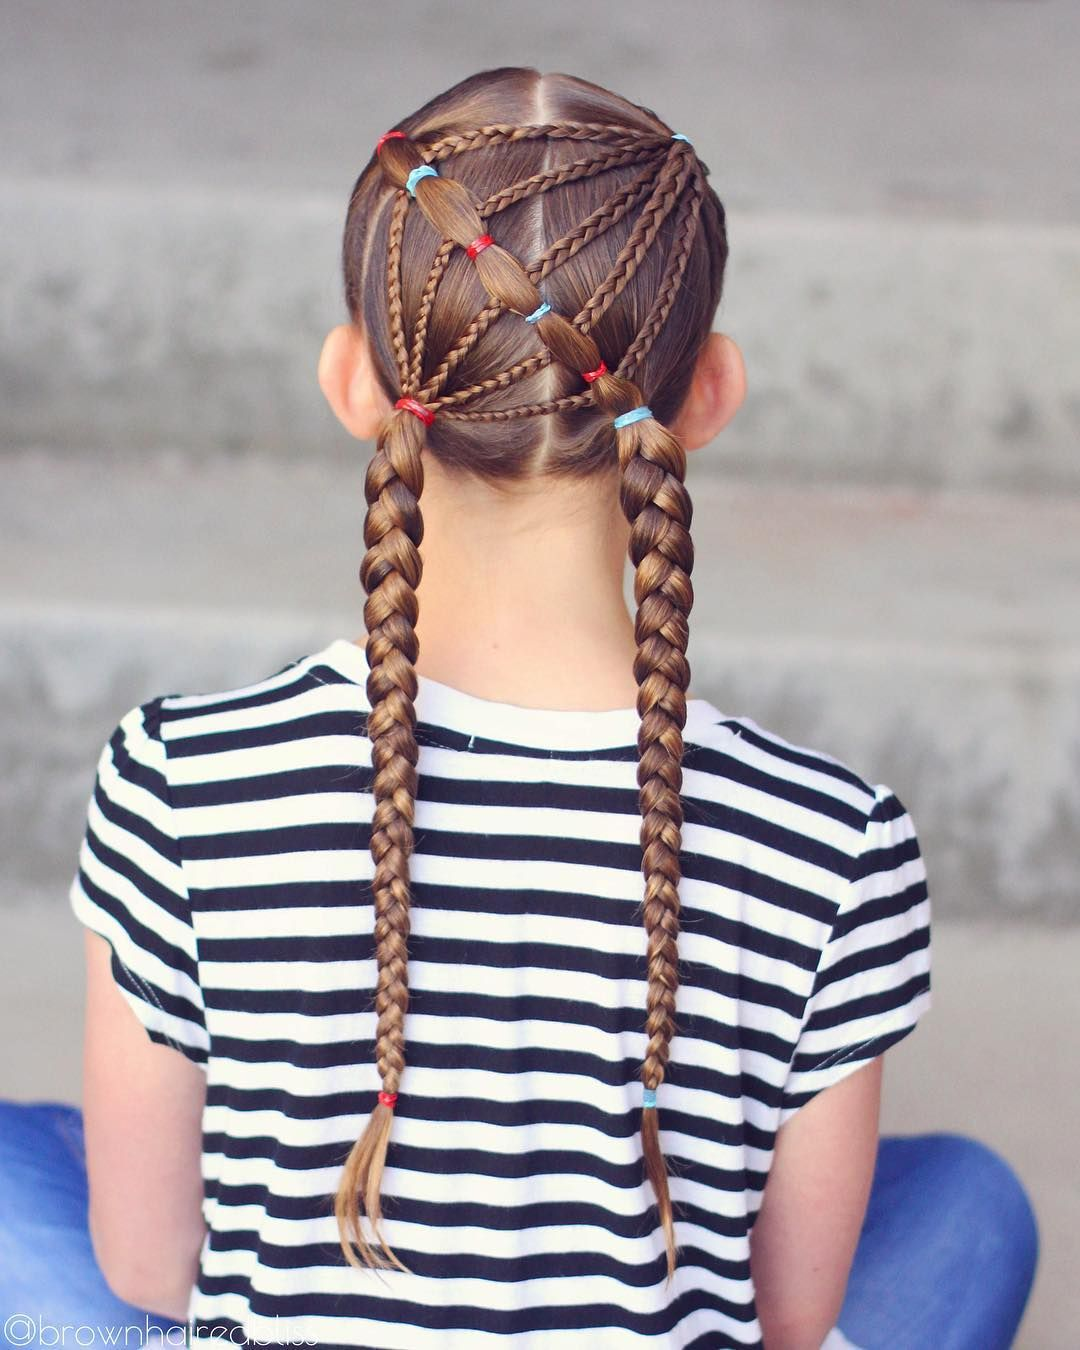 Small braids large braids ponytails cute hairstyle for girls